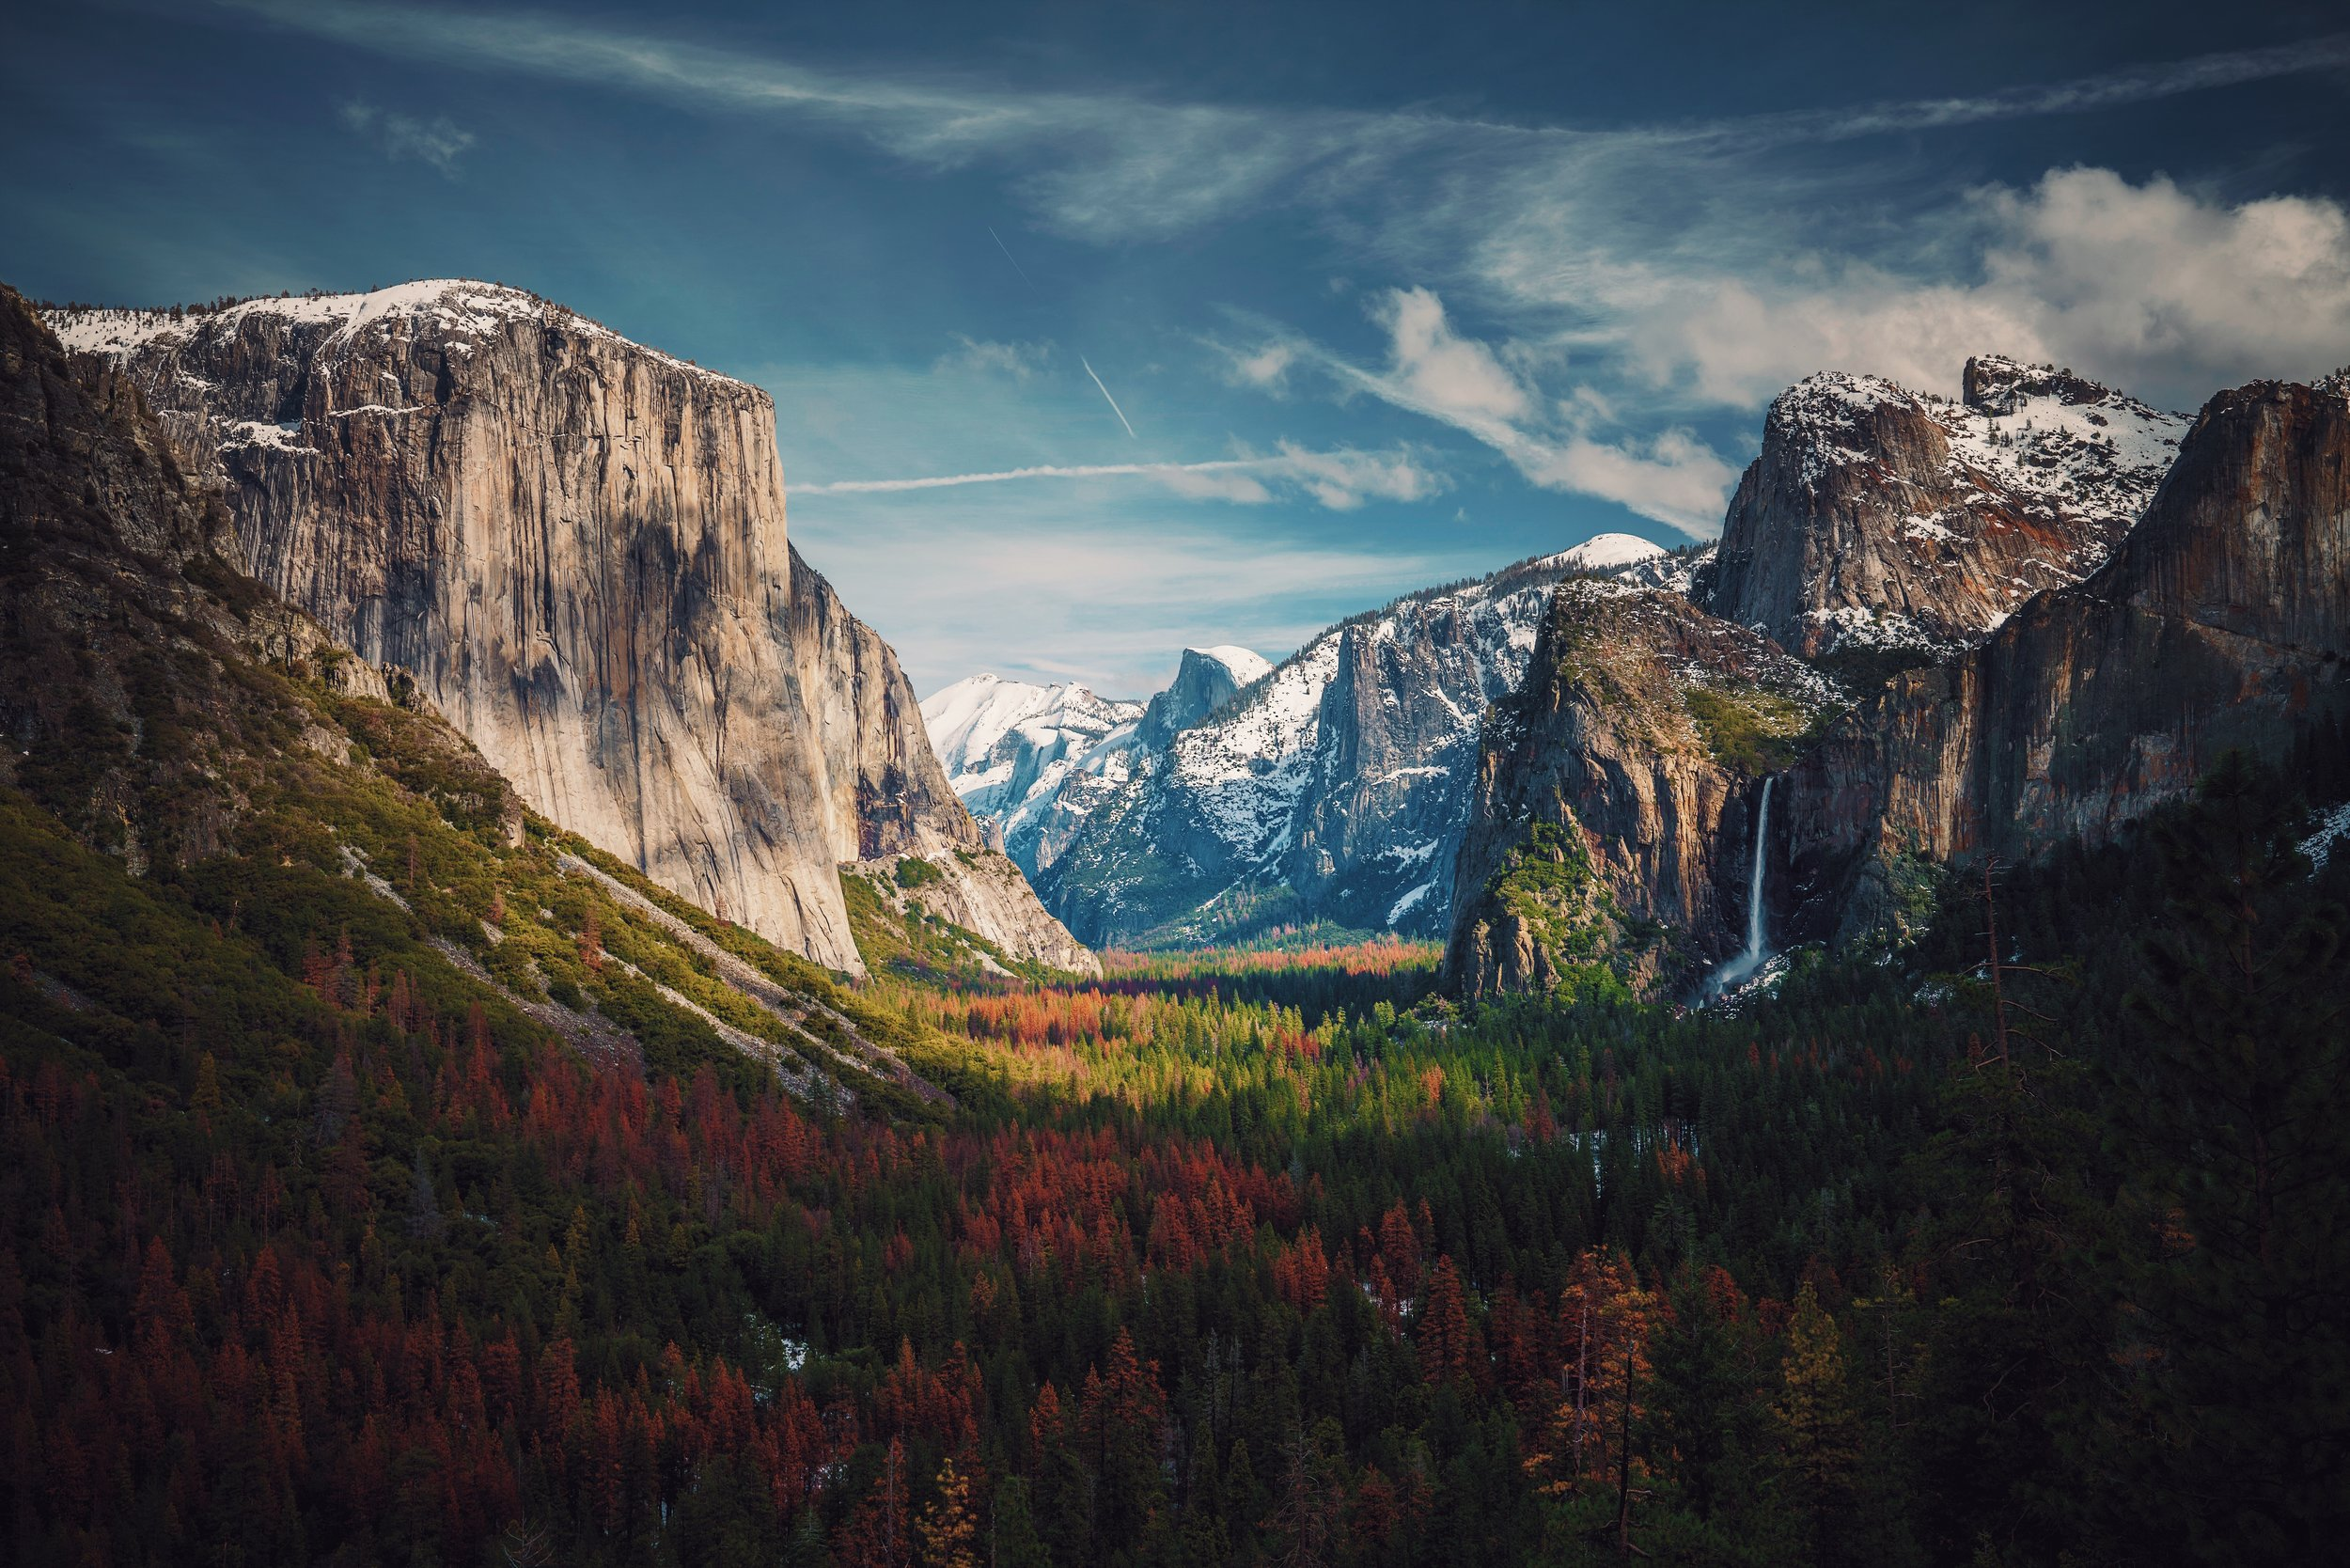 Tunnel View in Yosemite National Park Photo by   Aniket Deole